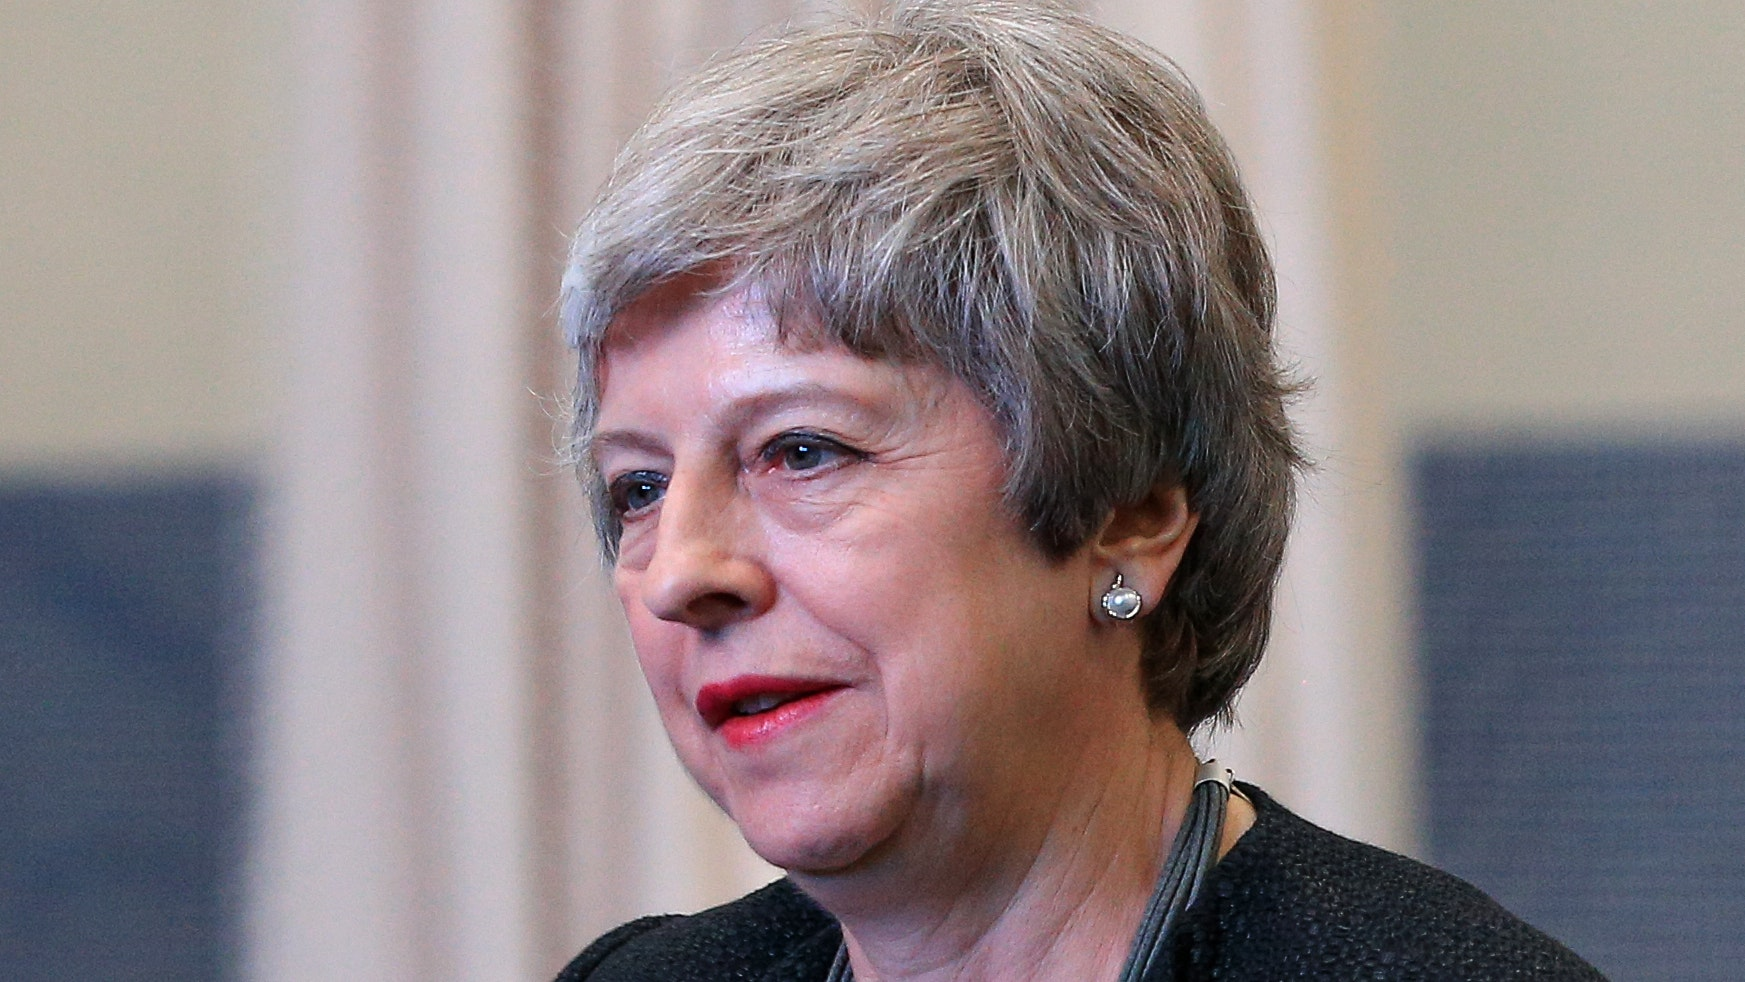 Theresa May to bring Brexit withdrawal bill before Parliament in early June